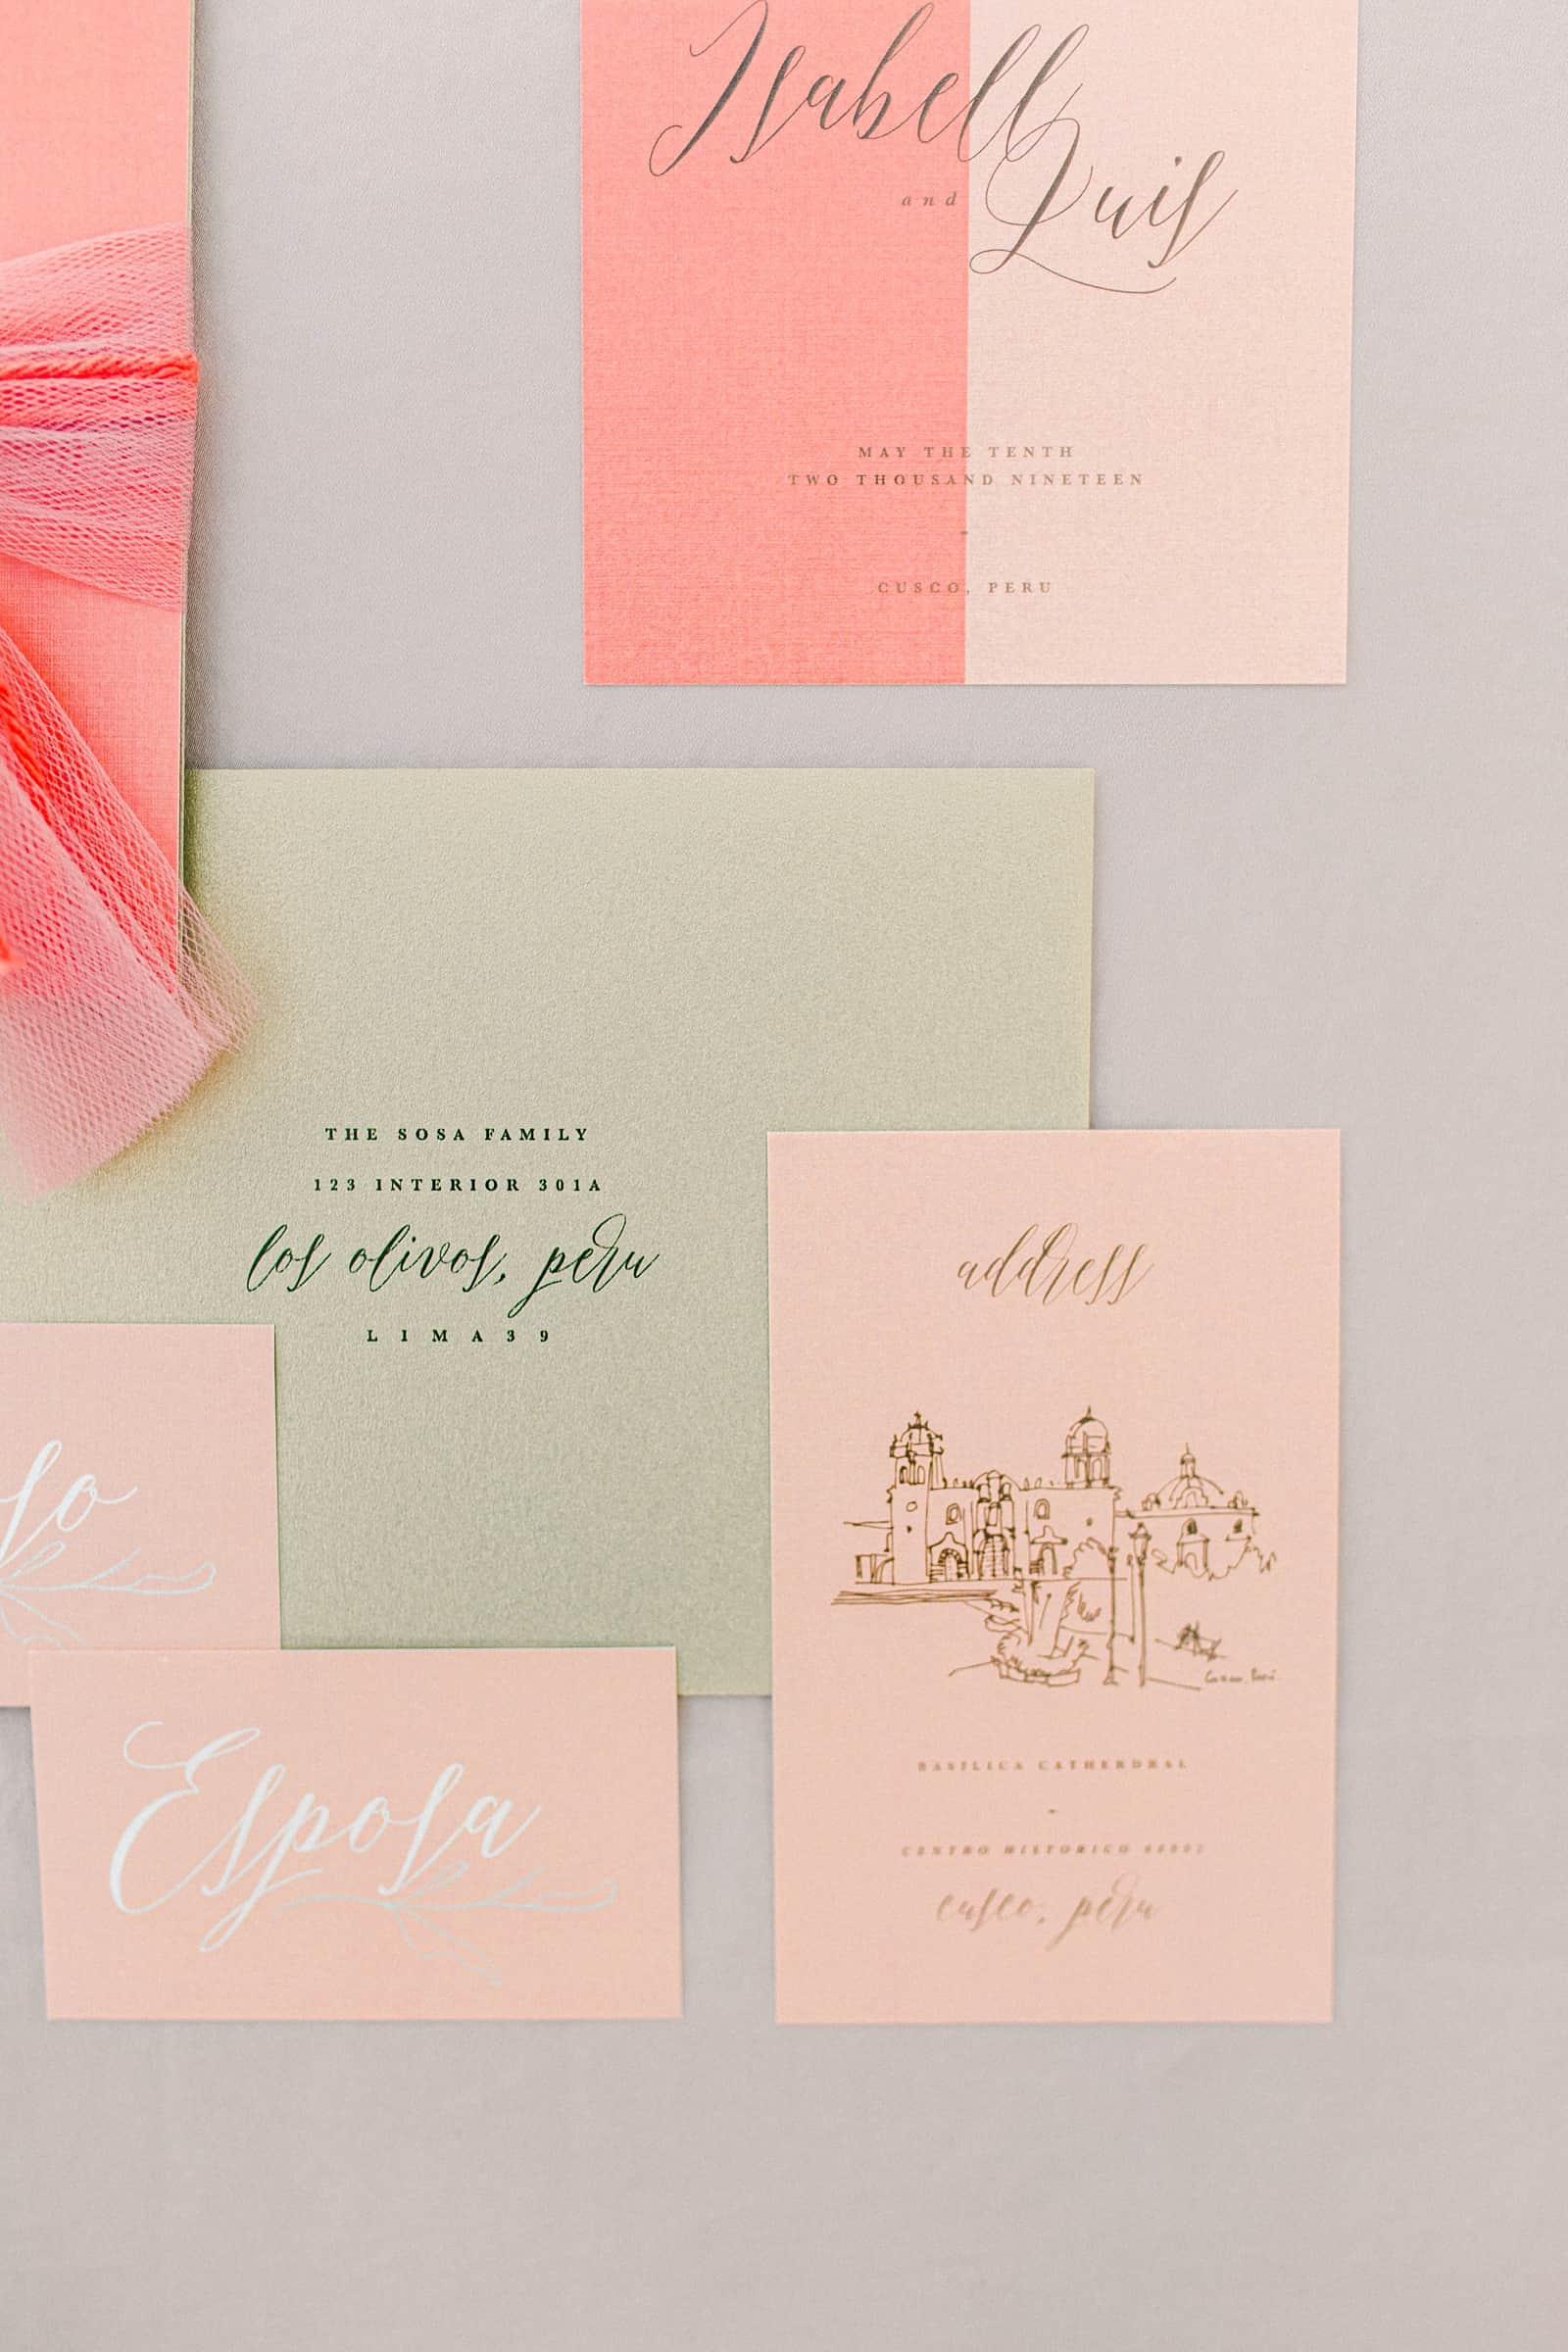 Cusco Peru Destination Wedding Inspiration, travel photography, pink blush tablecloth, pink and blush wedding invitation suite, calligraphy wedding invitations with hand drawn details